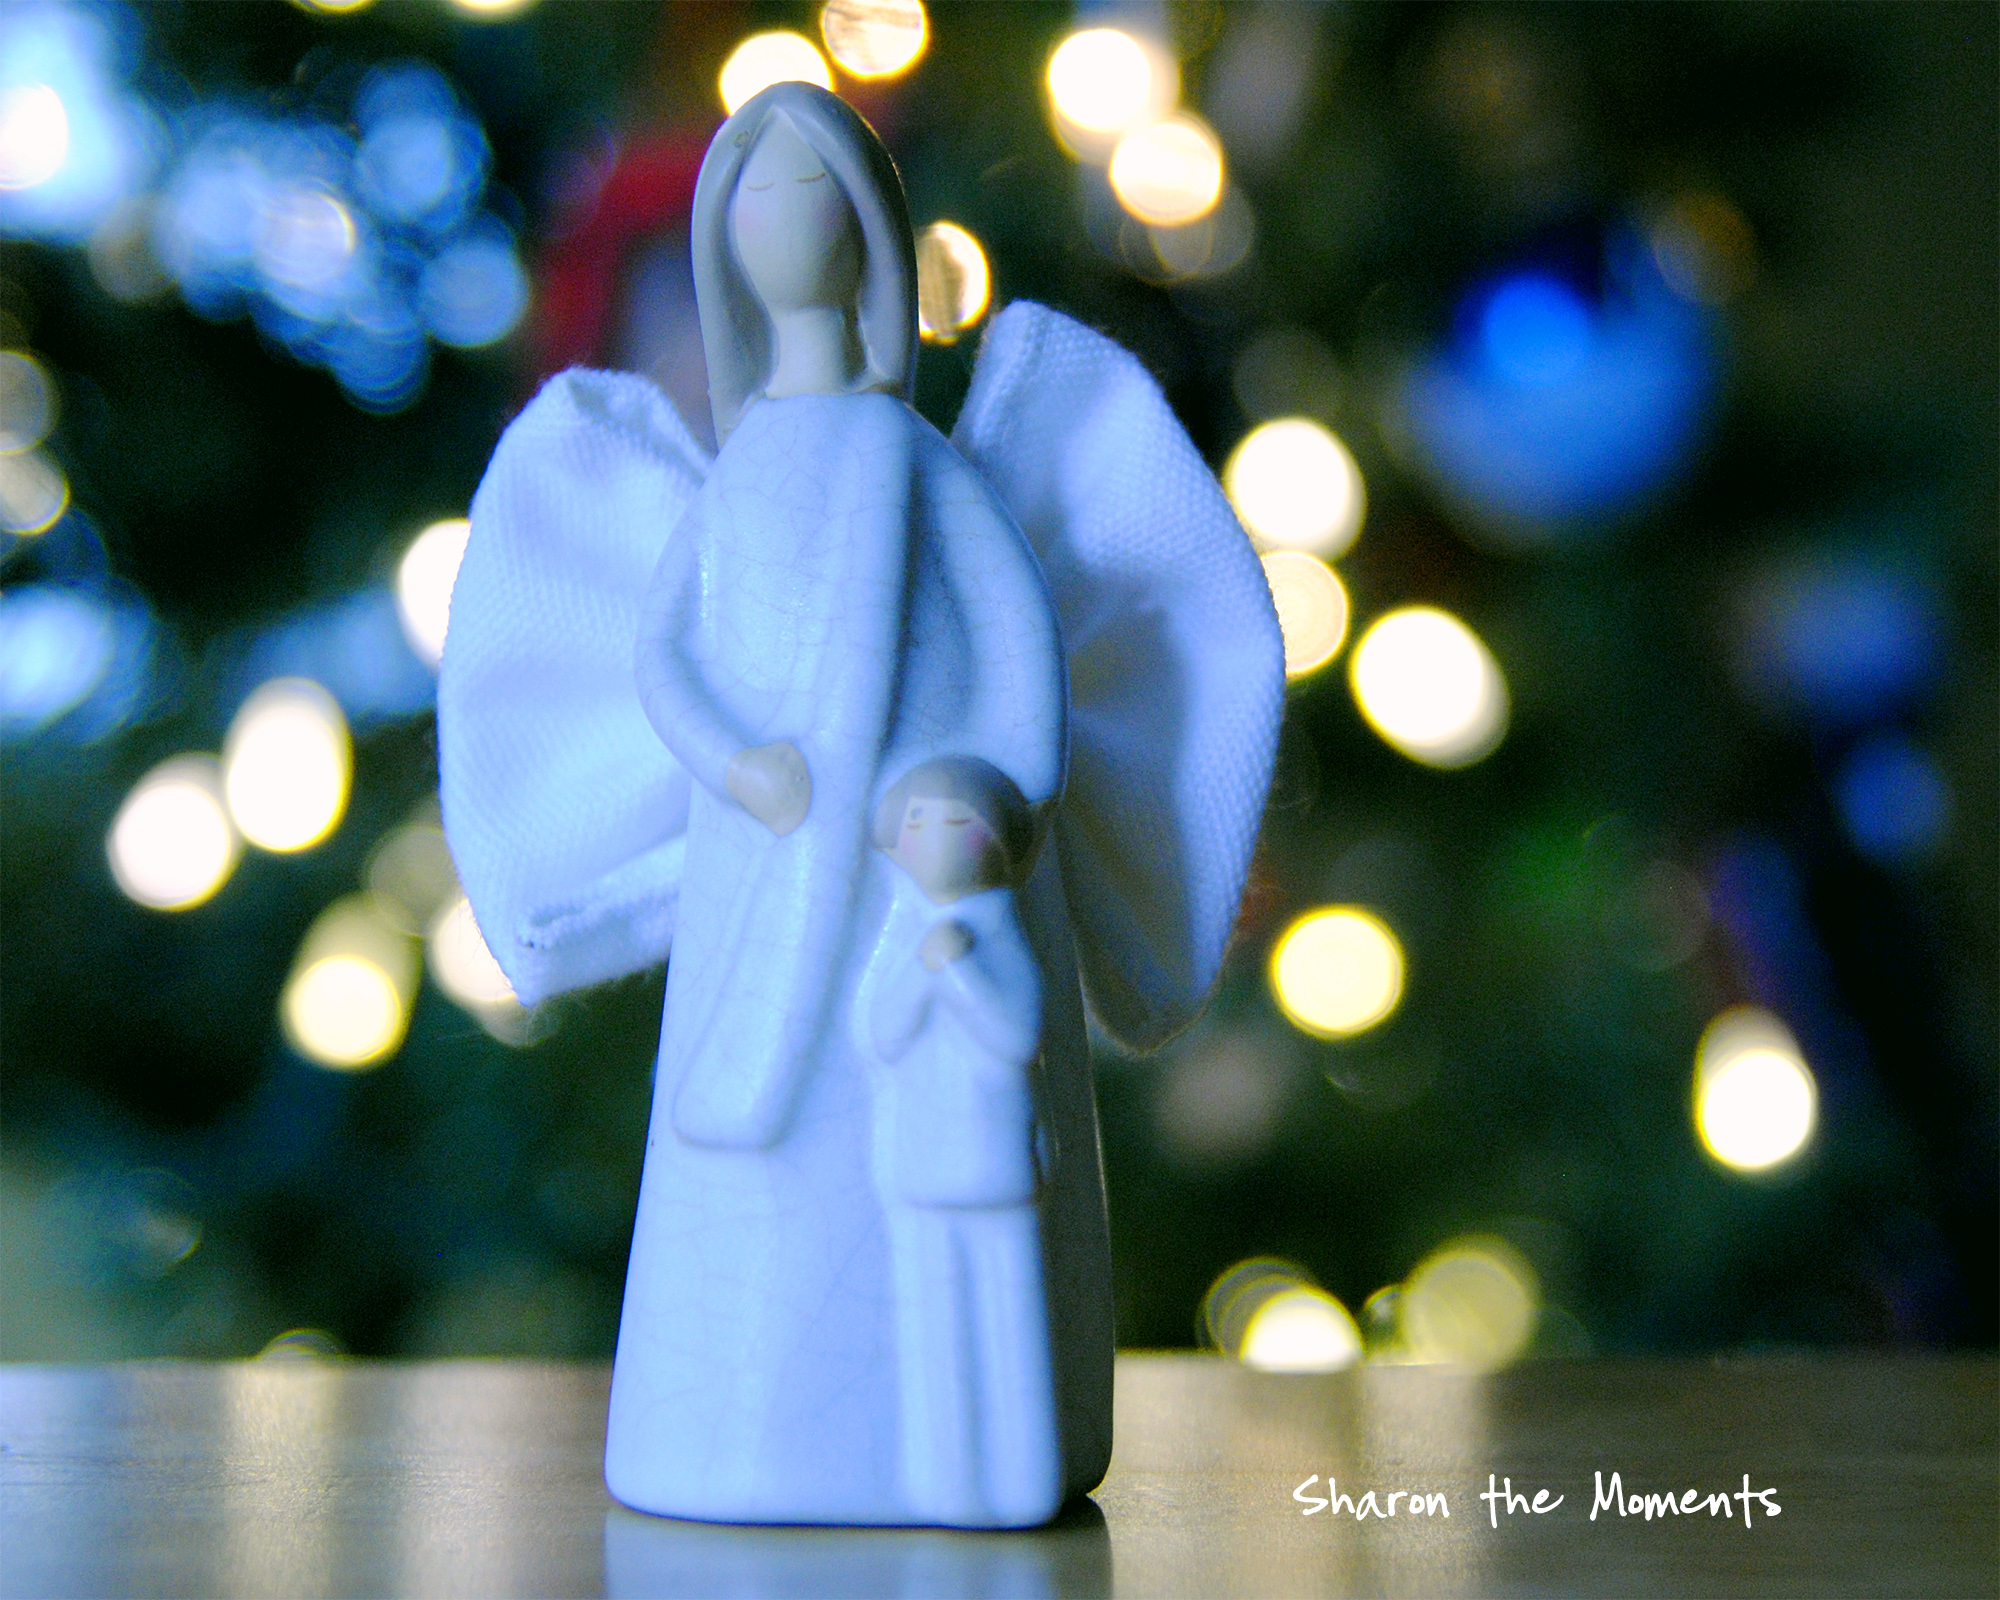 Eight Weeks of Christmas|Sharon the Moments Blog